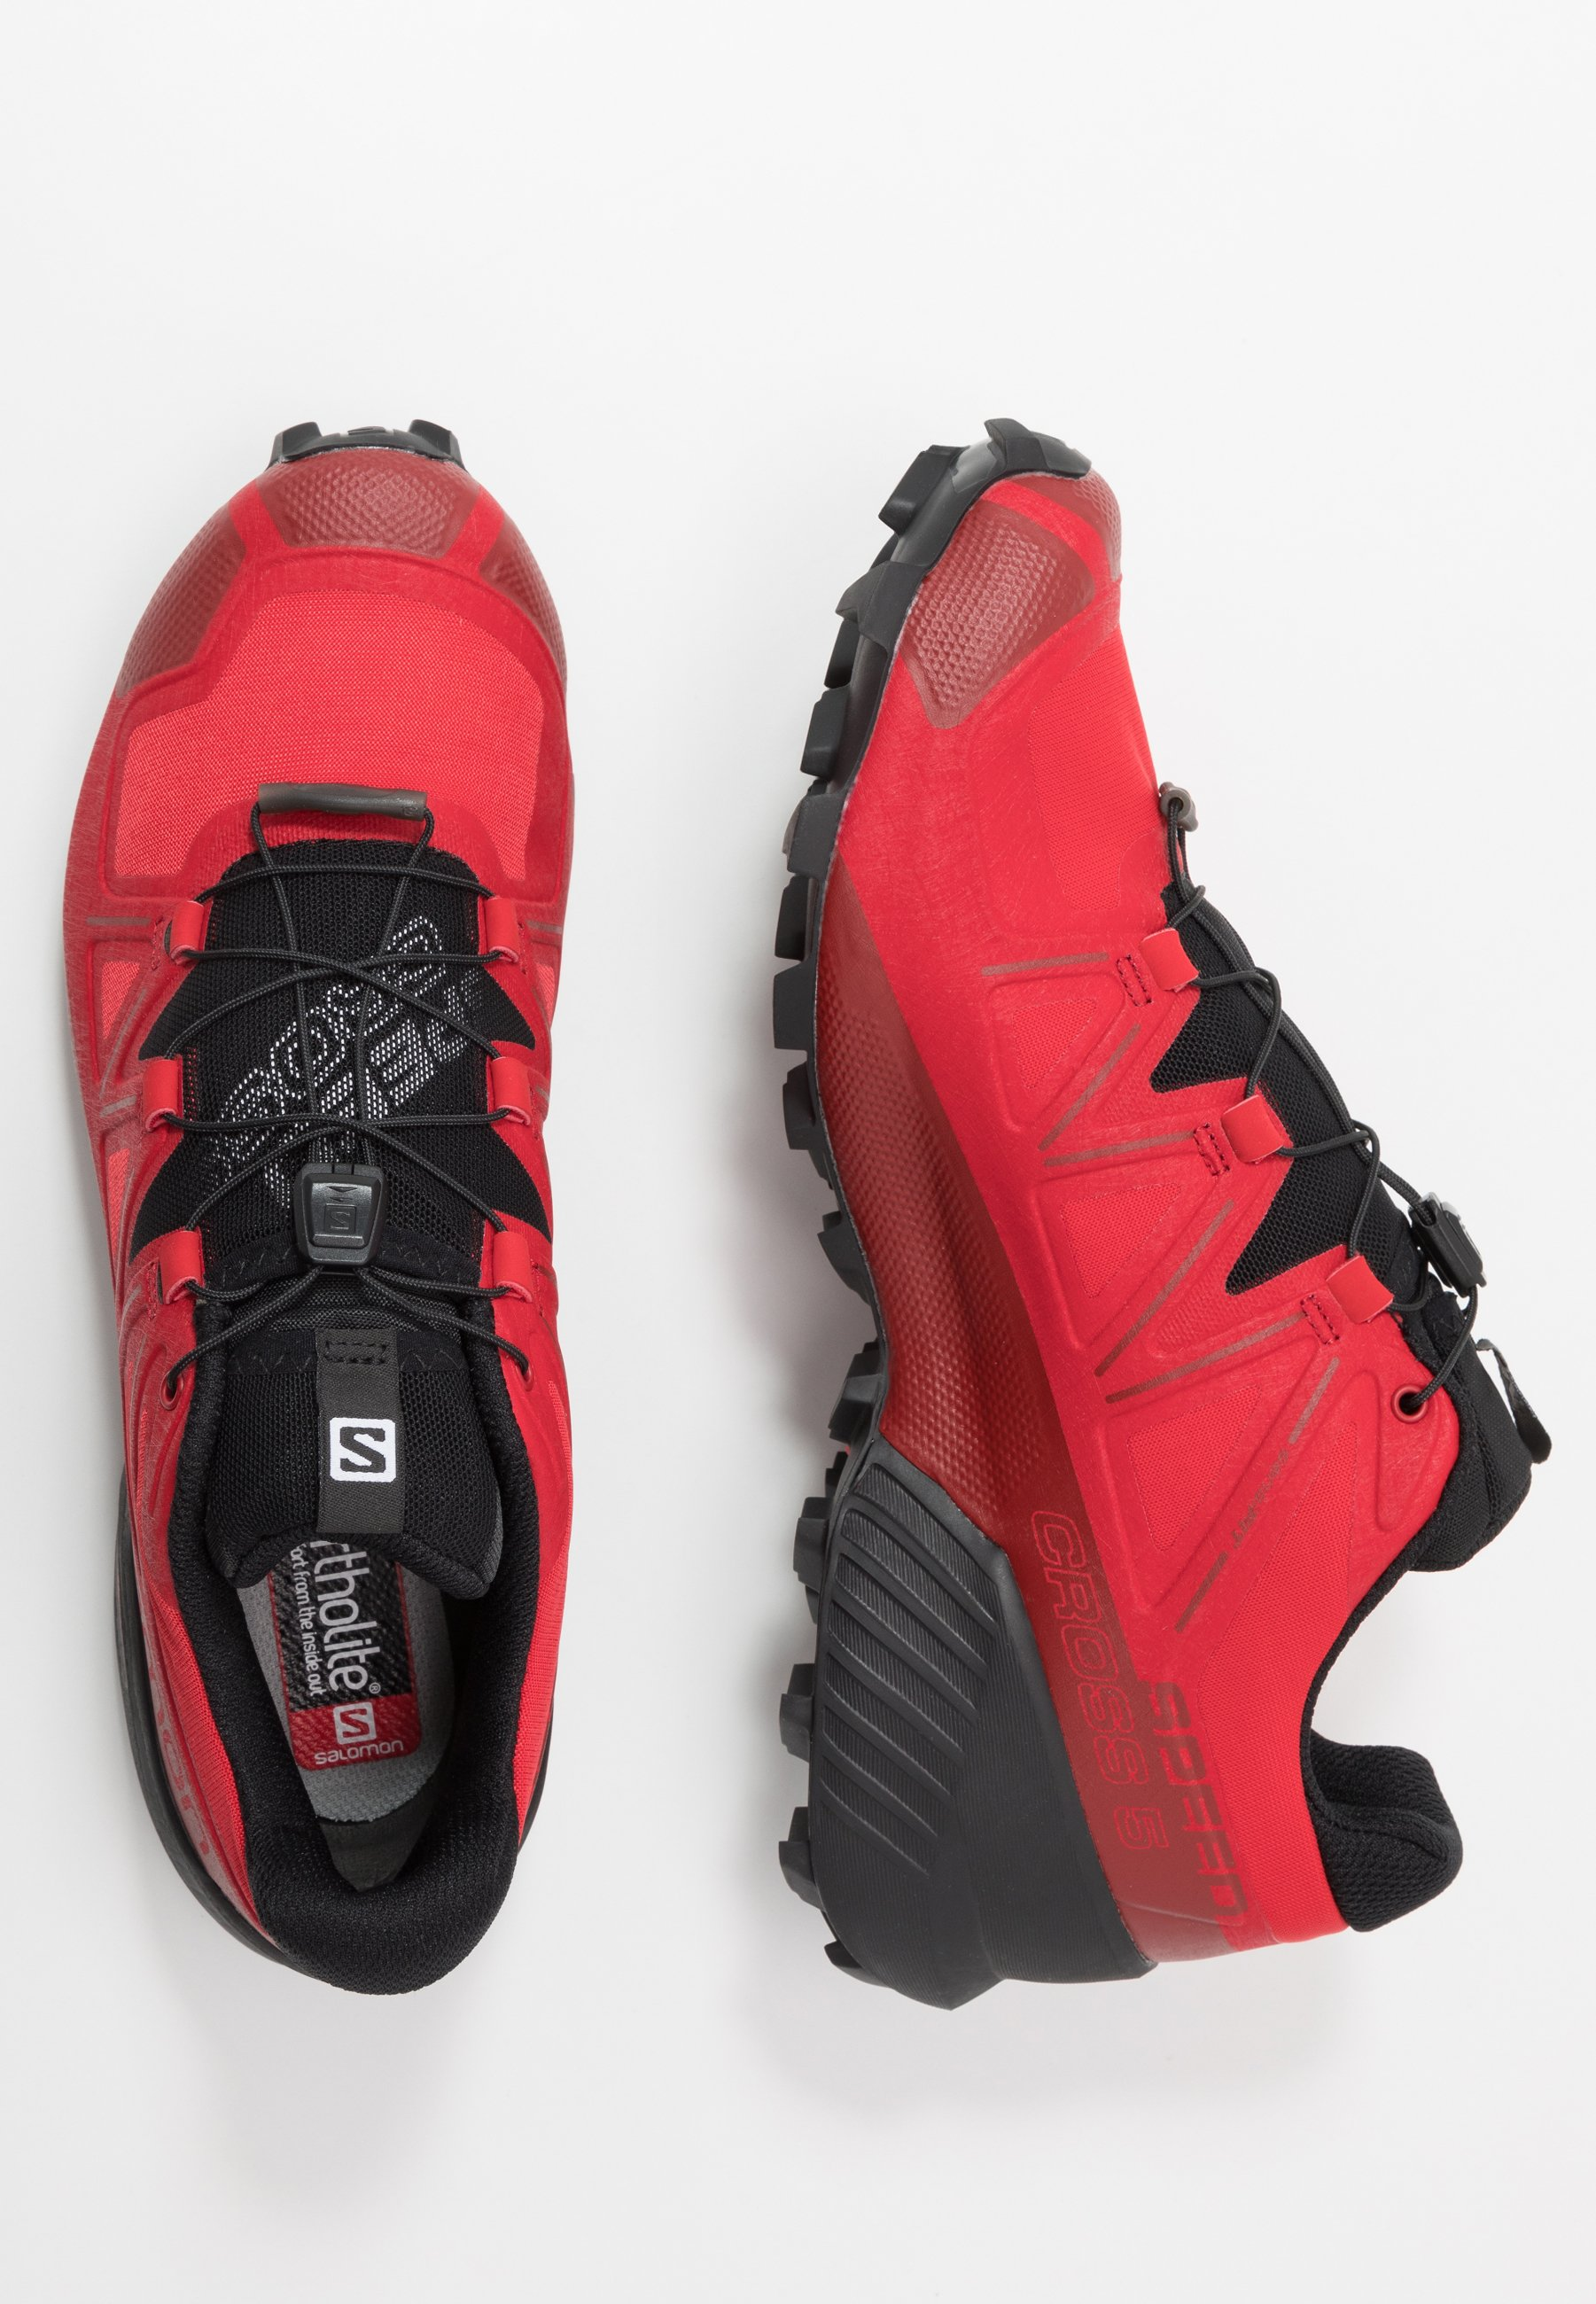 Salomon Speedcross 5 - Löparskor Terräng Barbados Cherry/black/red Dahlia IP4sORn